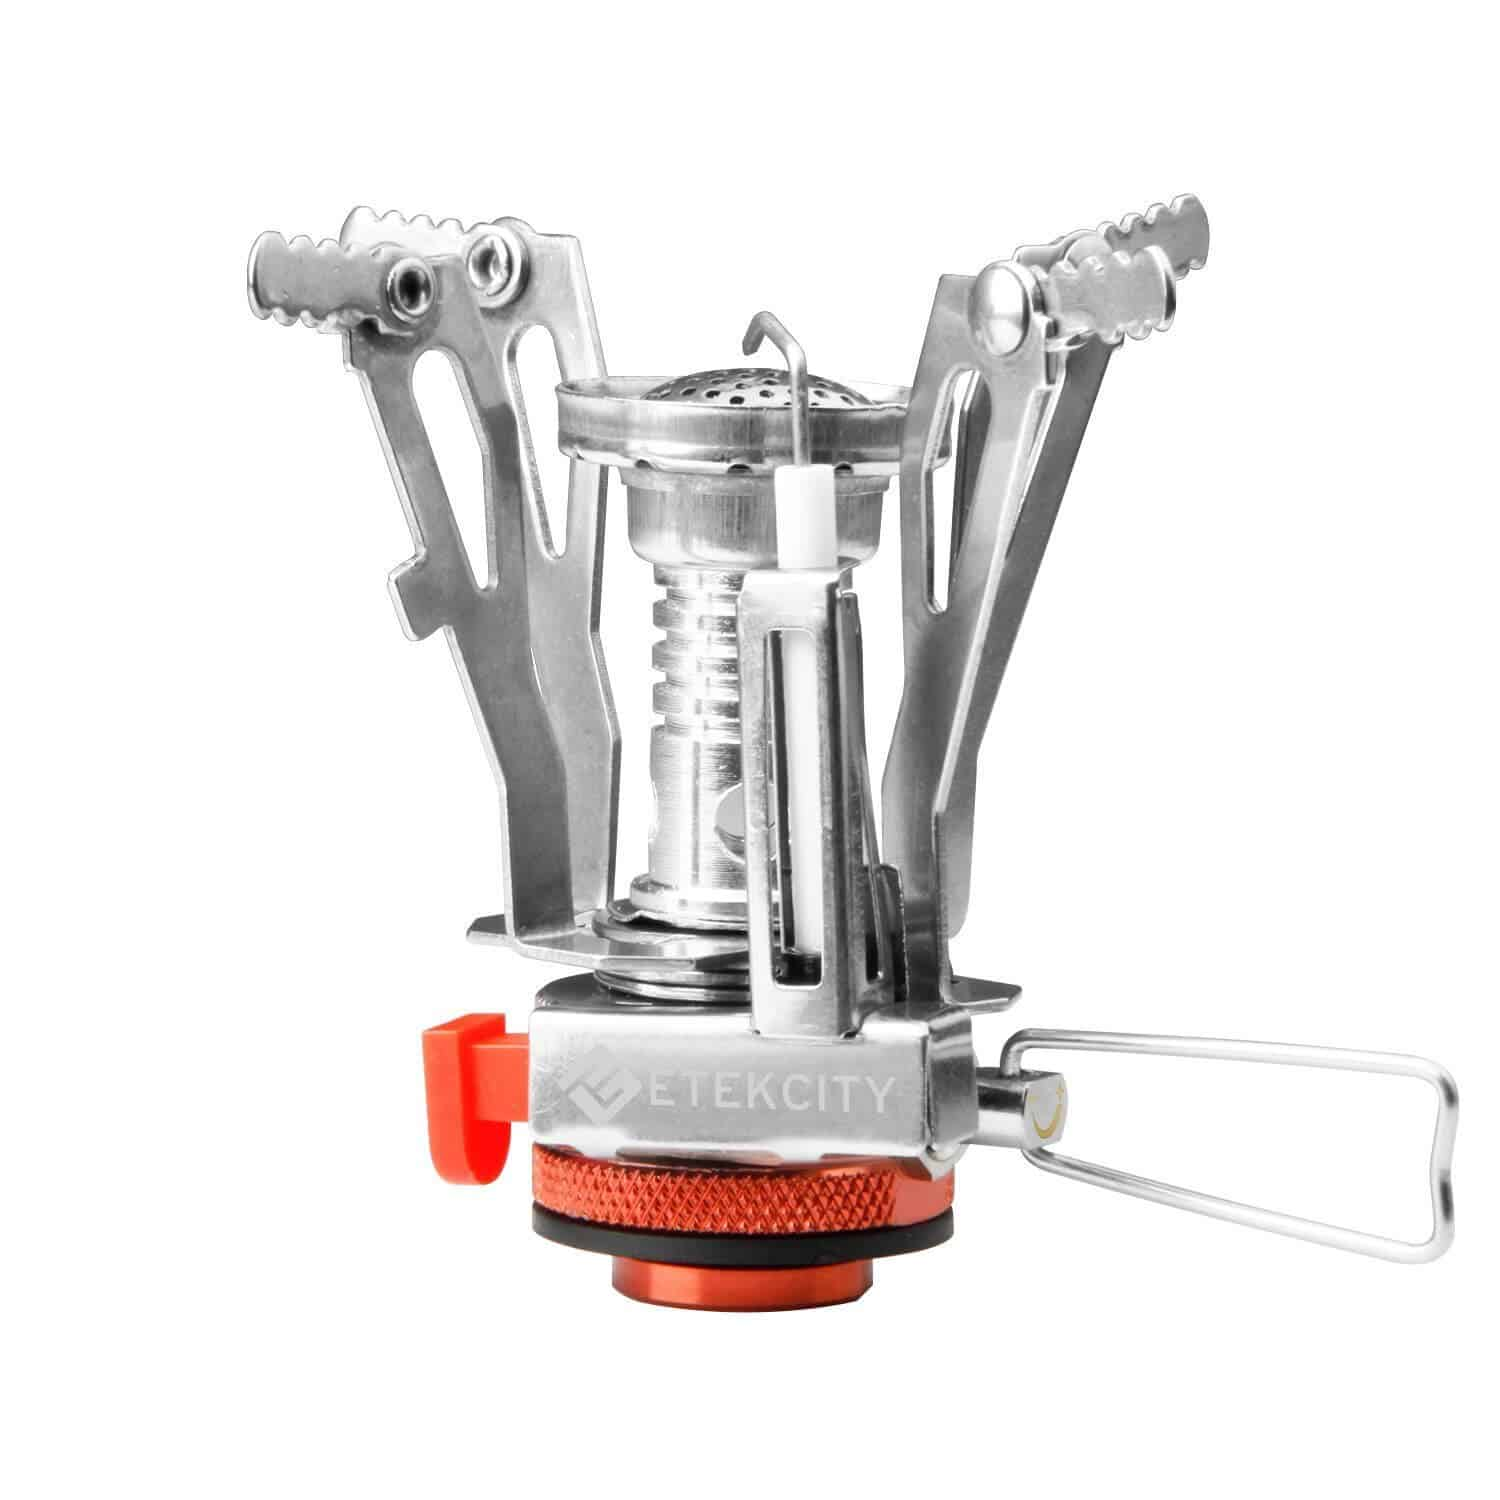 etekcity_backpacking_stove